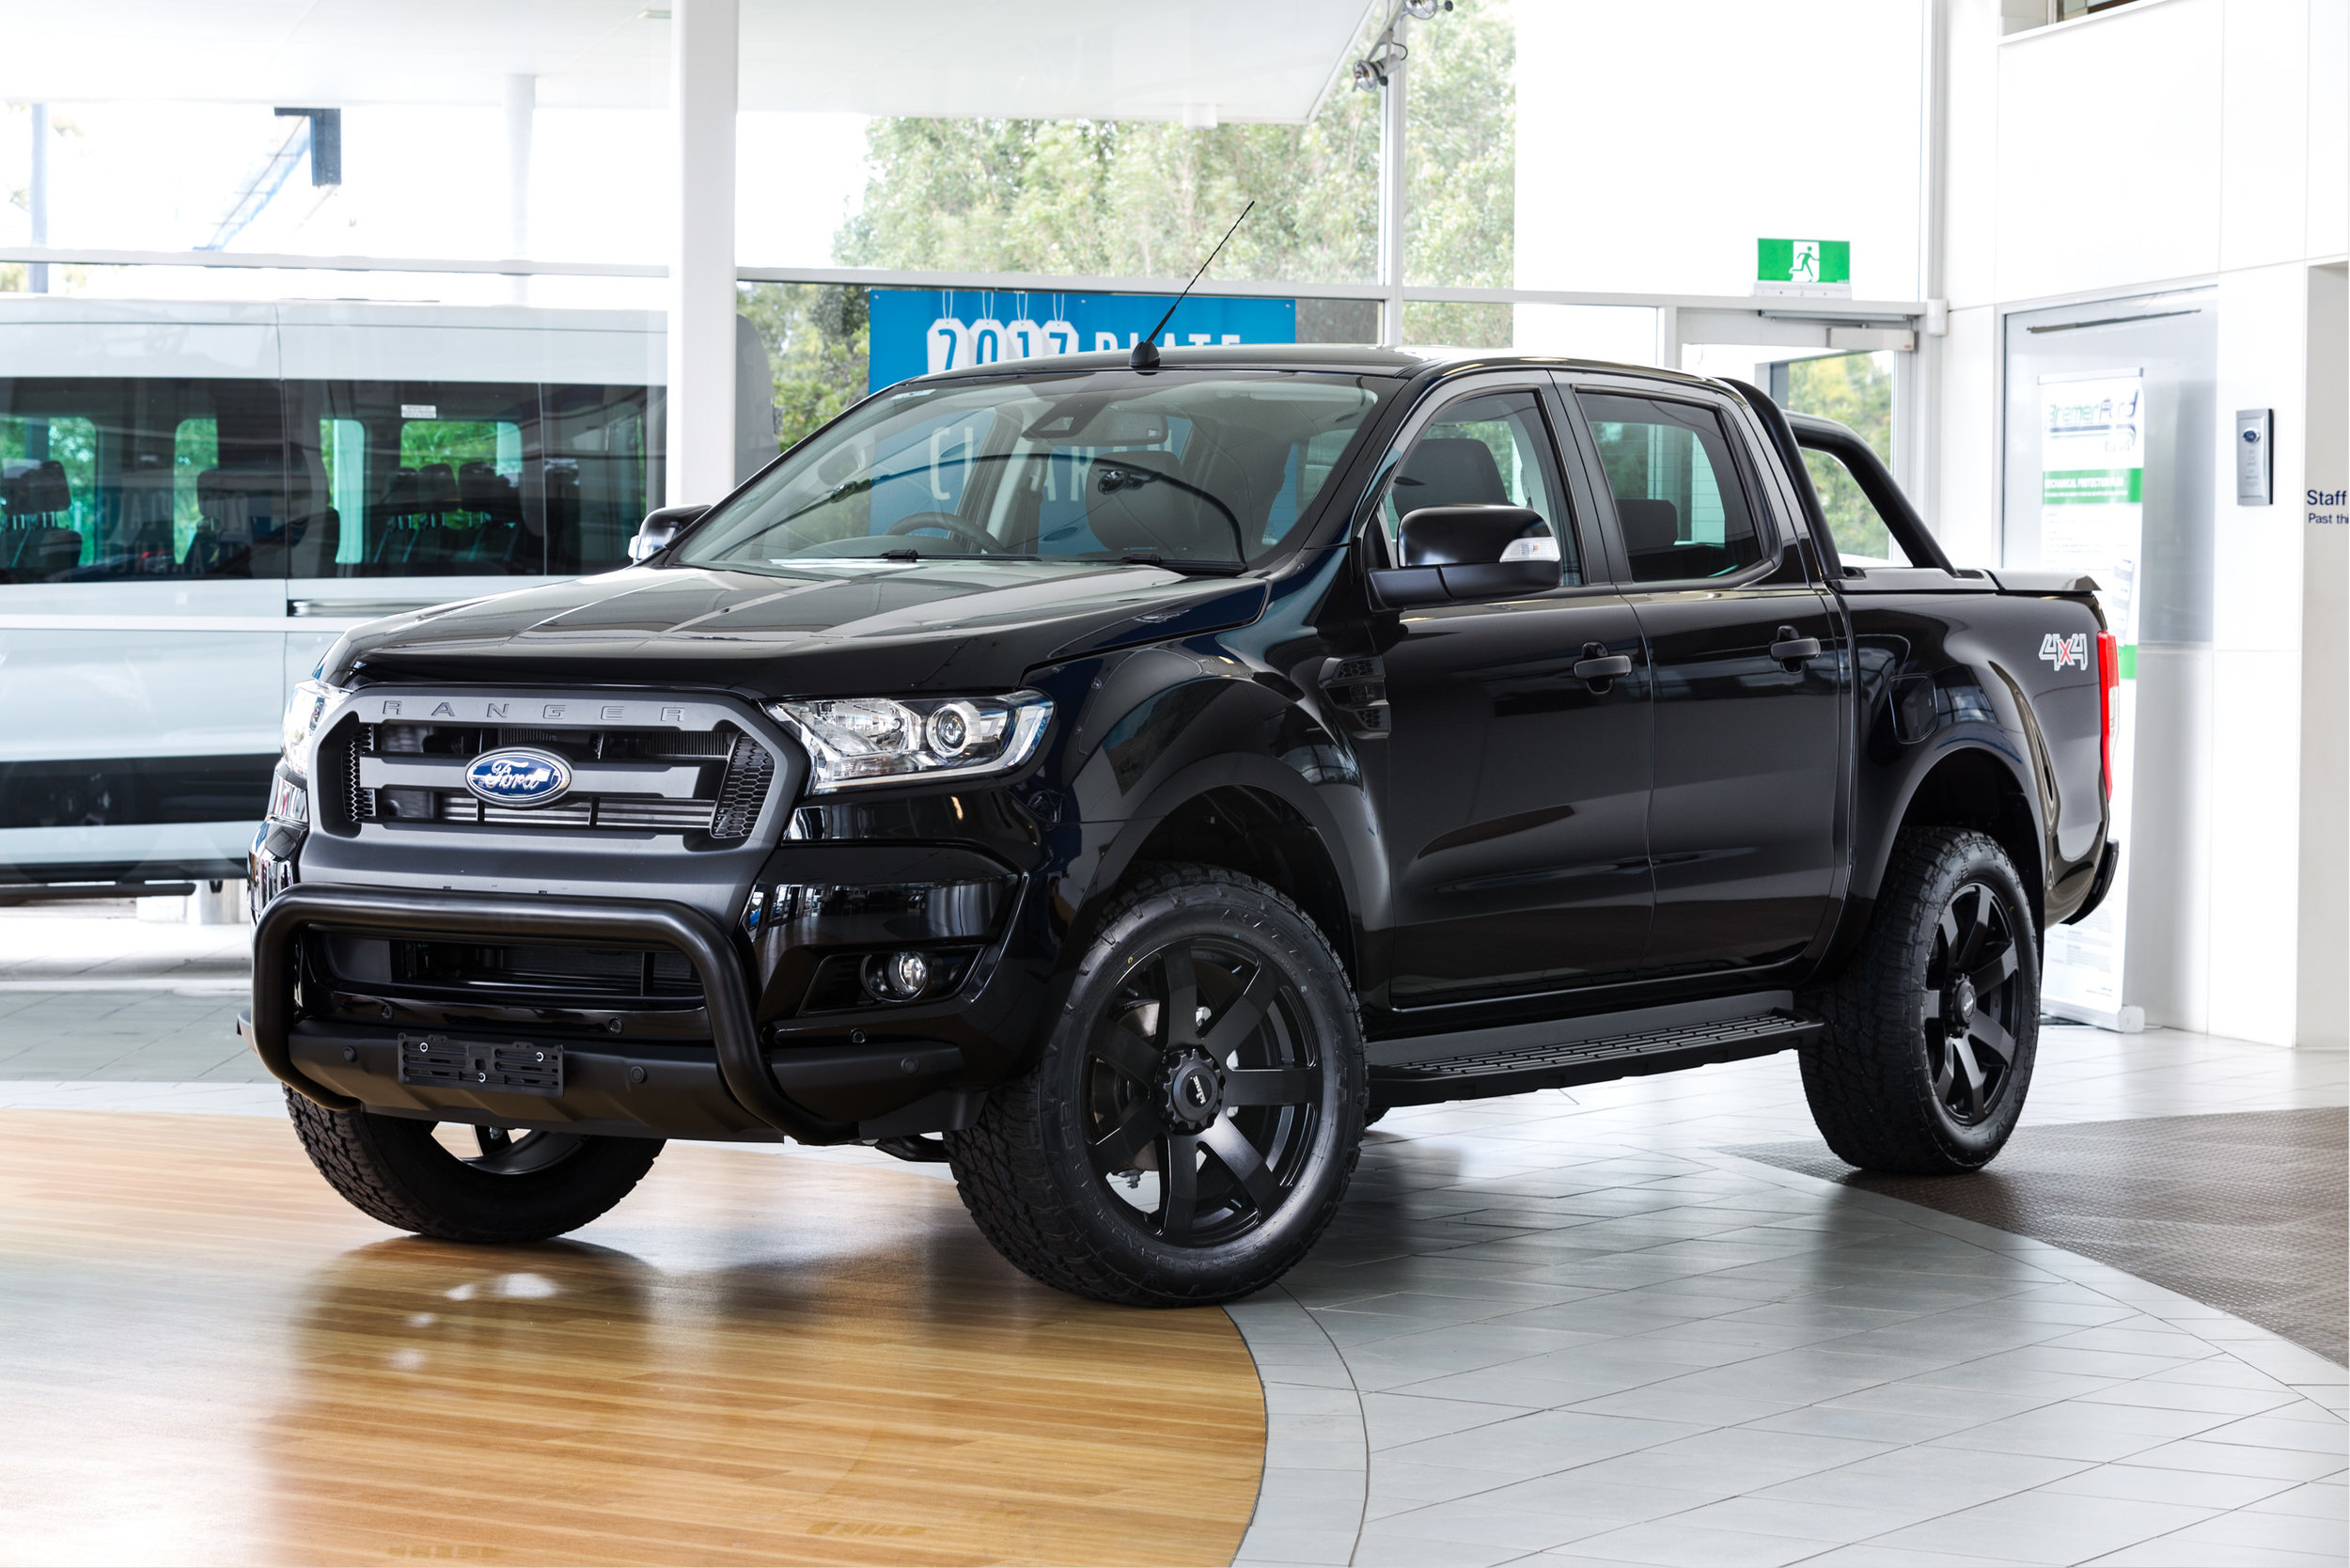 Ford Ranger (1 of 1).jpg